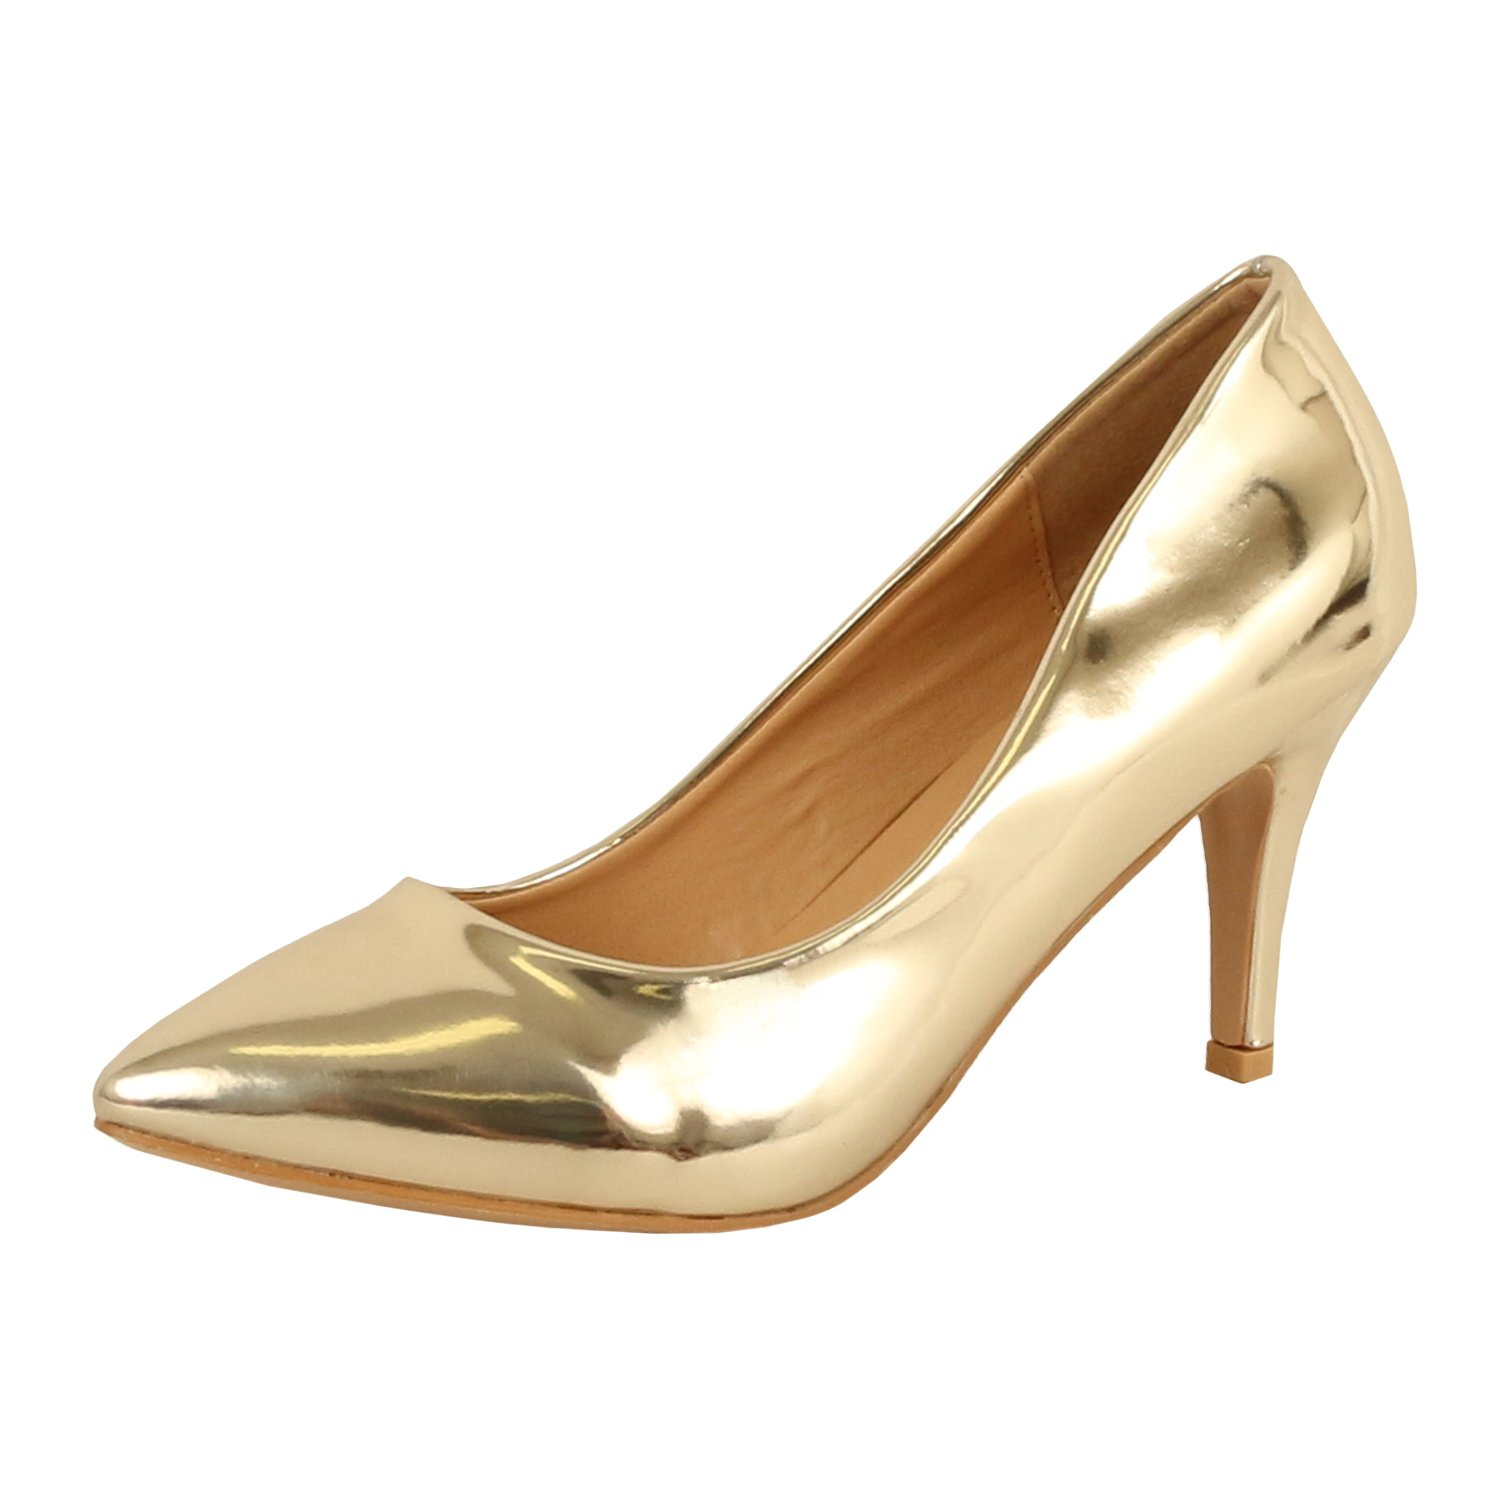 Guilty Shoes レディース B075TG93HF 6.5 M|16-gold1-patent 16-gold1-patent 6.5 M